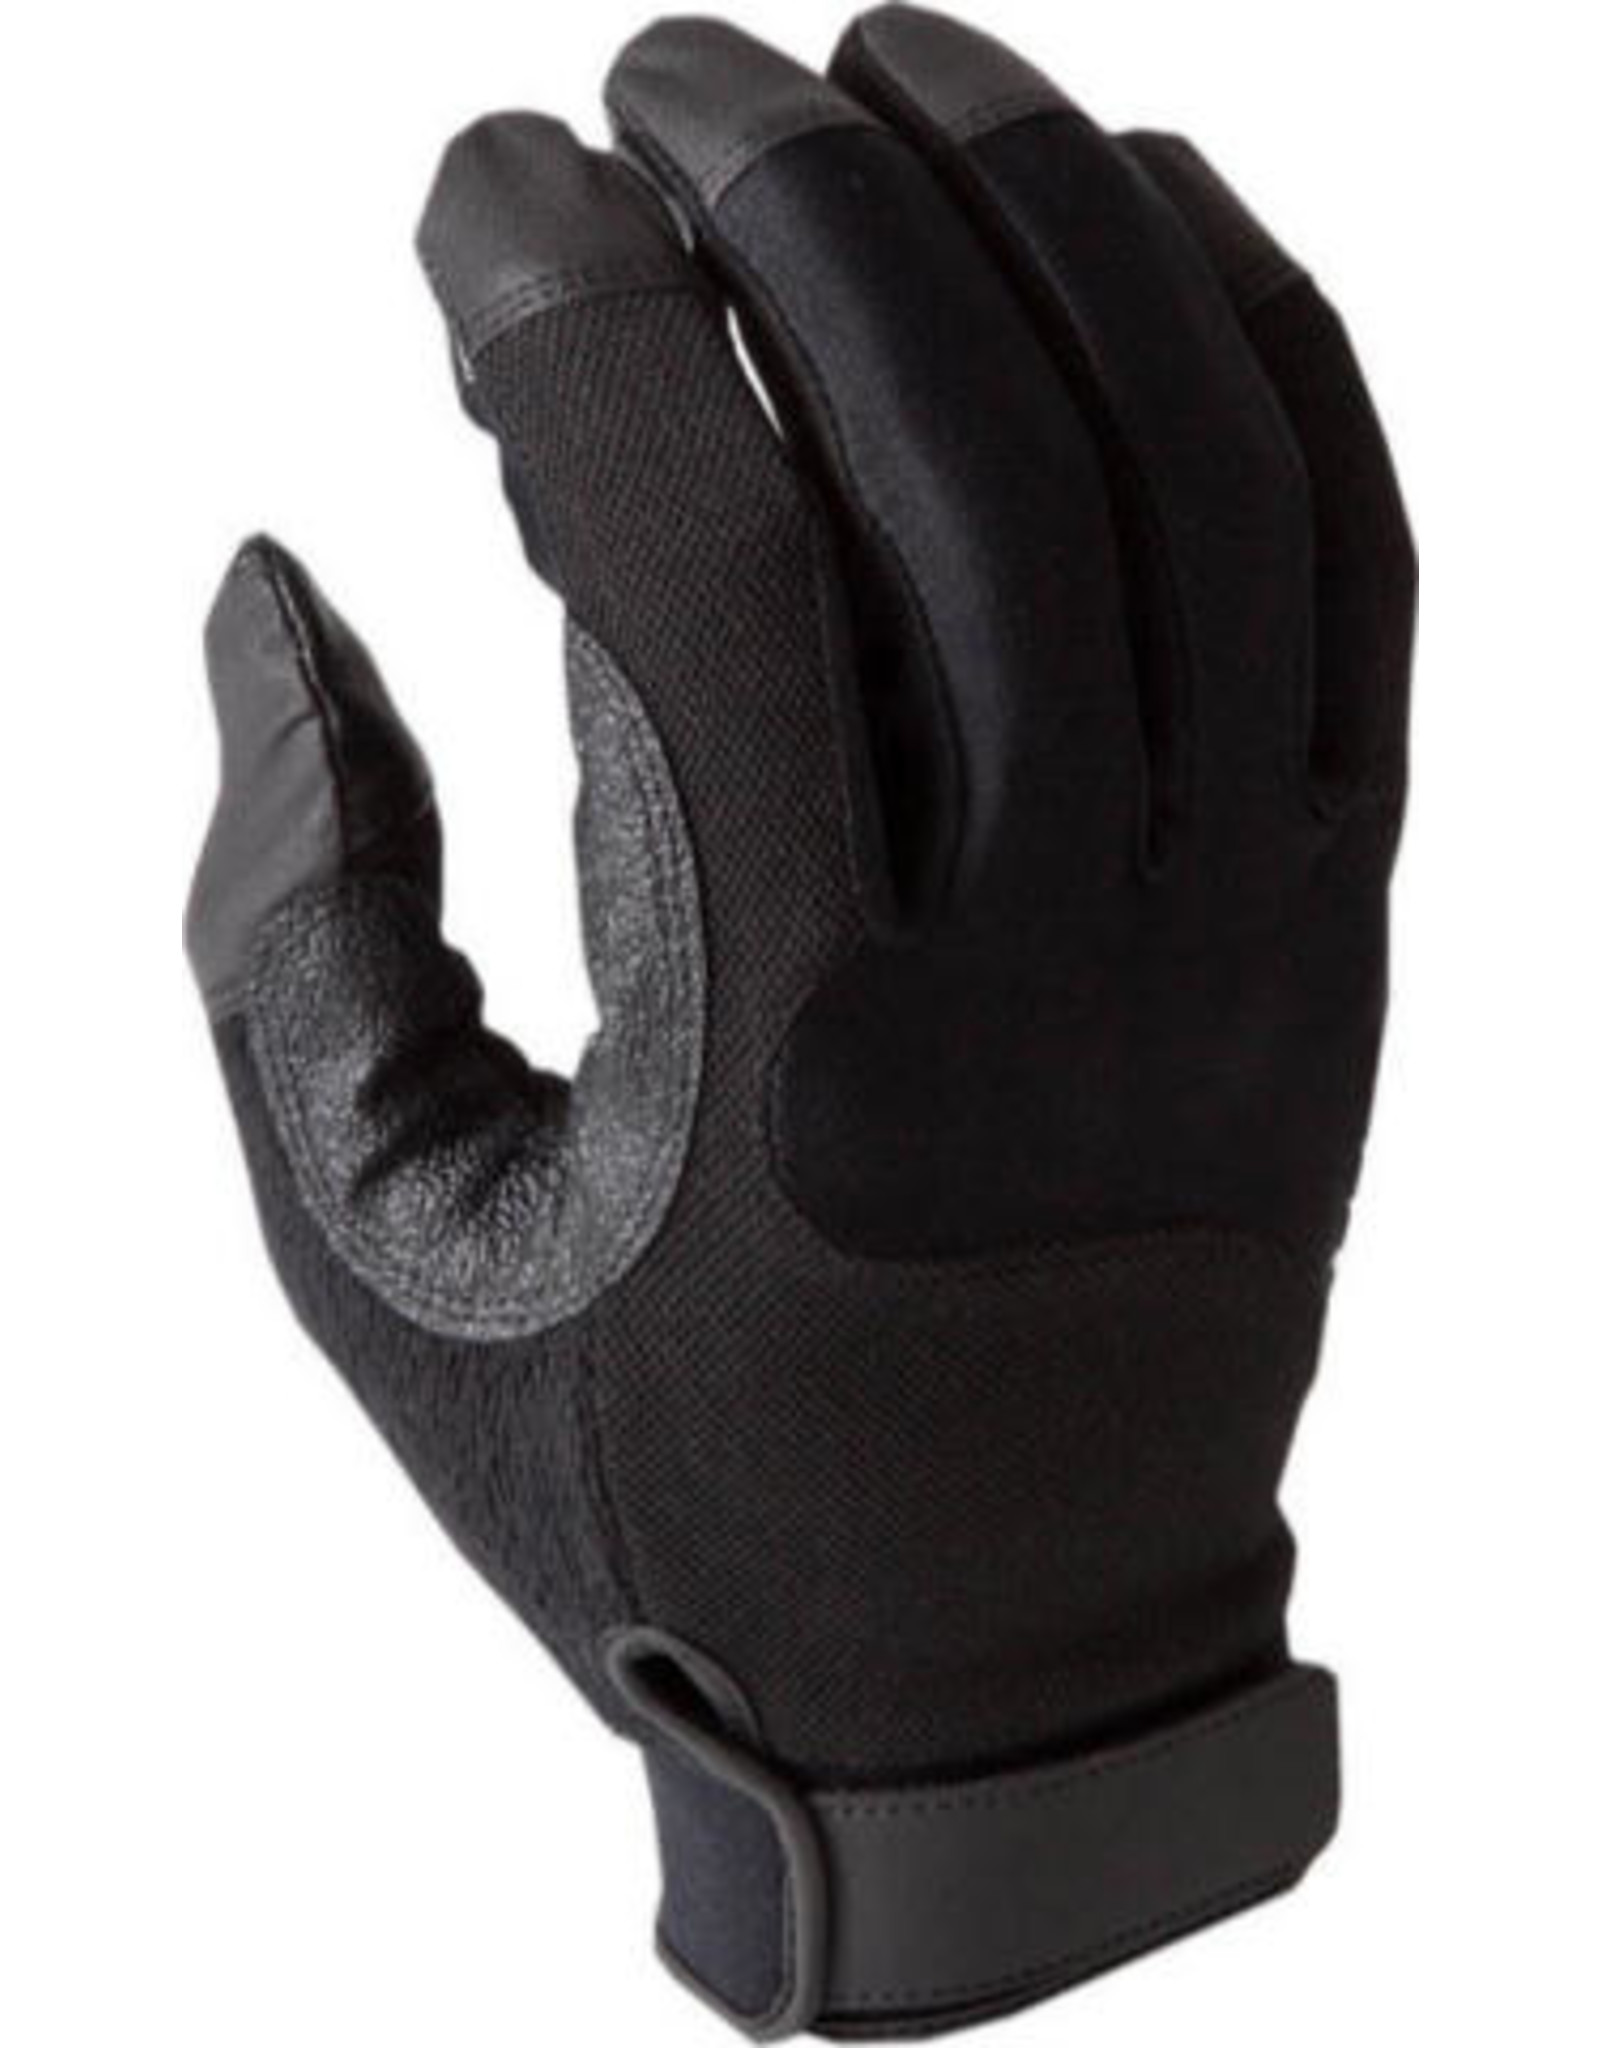 HWI TACTICAL & DUTY DESIGNS CTS100 Cut-Resistant Touchscreen gloves